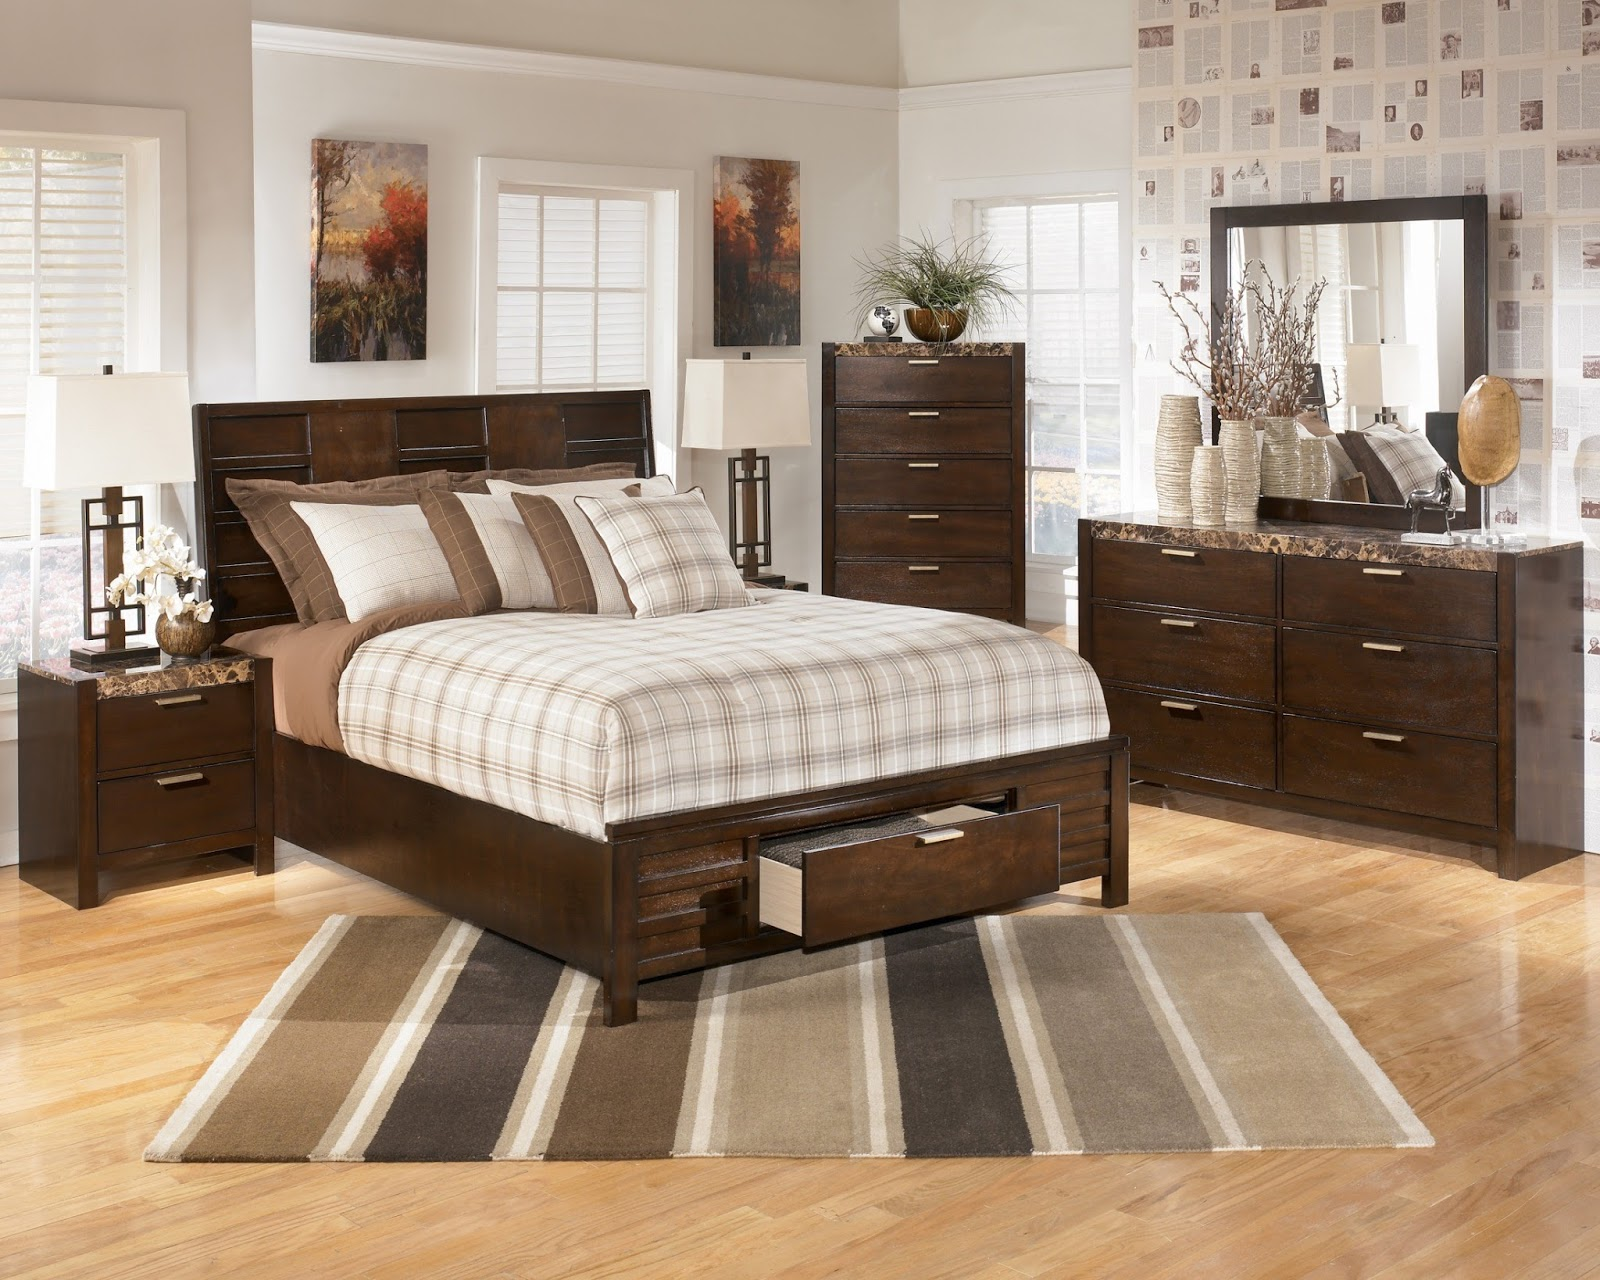 Get rid of that clutter chaviva 39 s How to arrange bedroom furniture